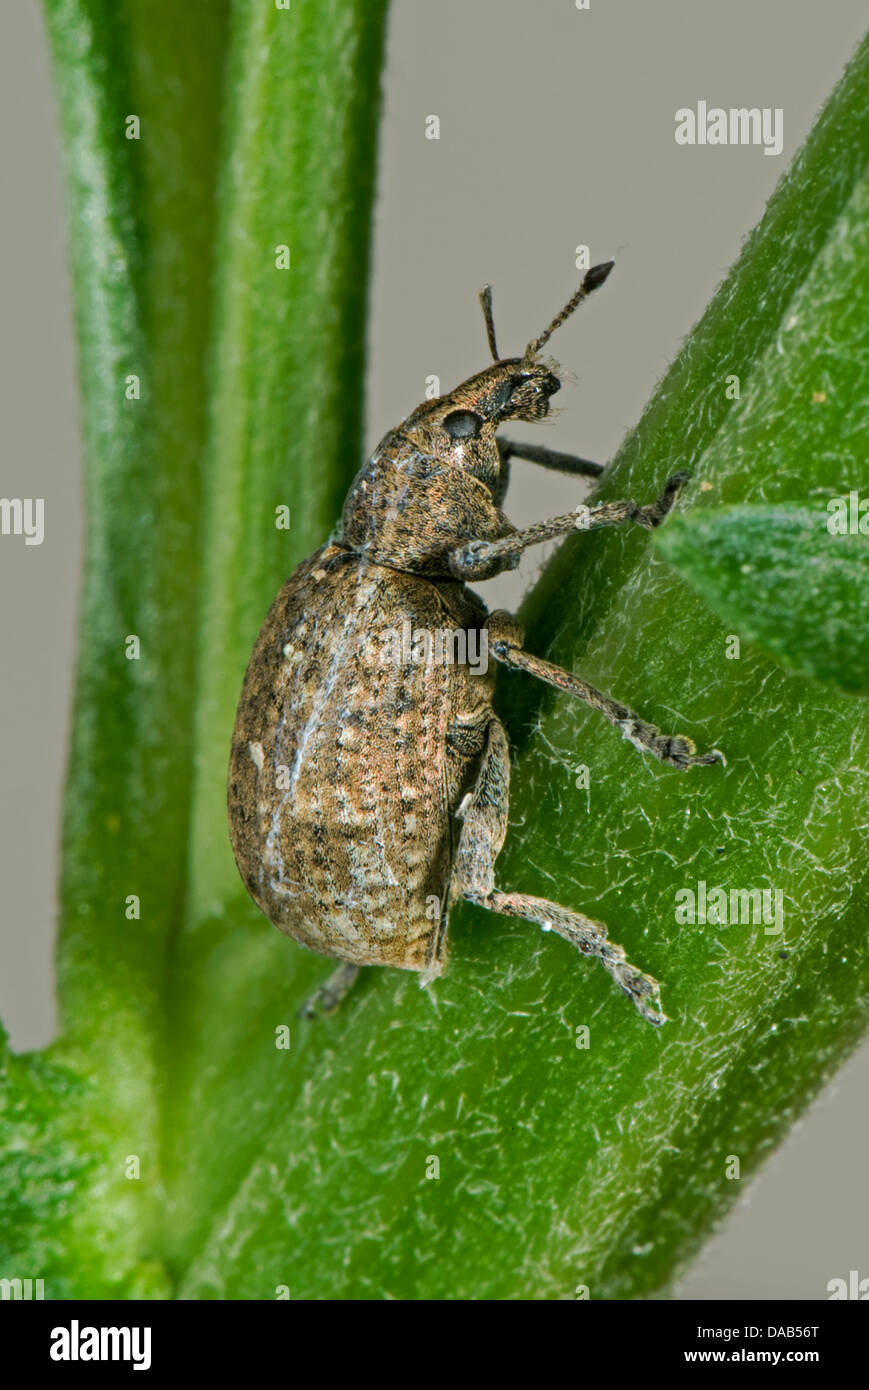 Clay-coloured weevil, Otiorhychus singularis, adult with damage antenna - Stock Image